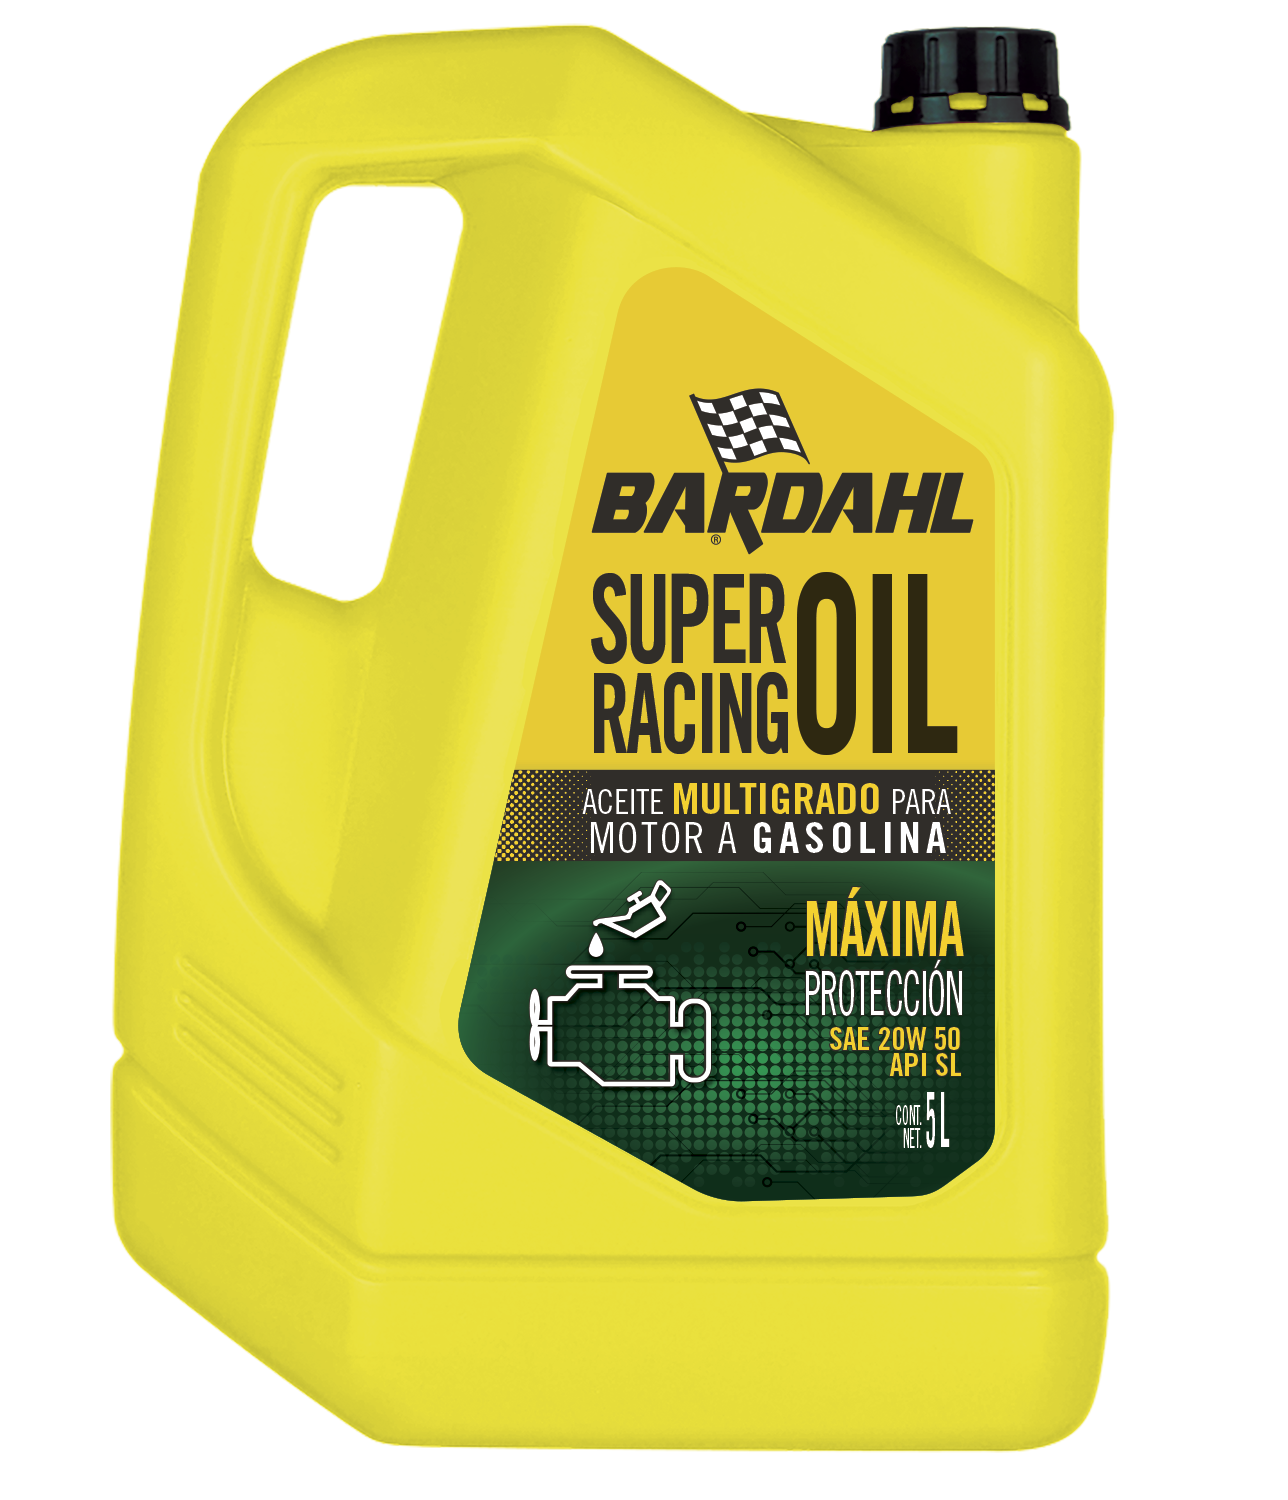 BARDAHL F-1 MR, Super Racing Oil SAE 20W50 API SL